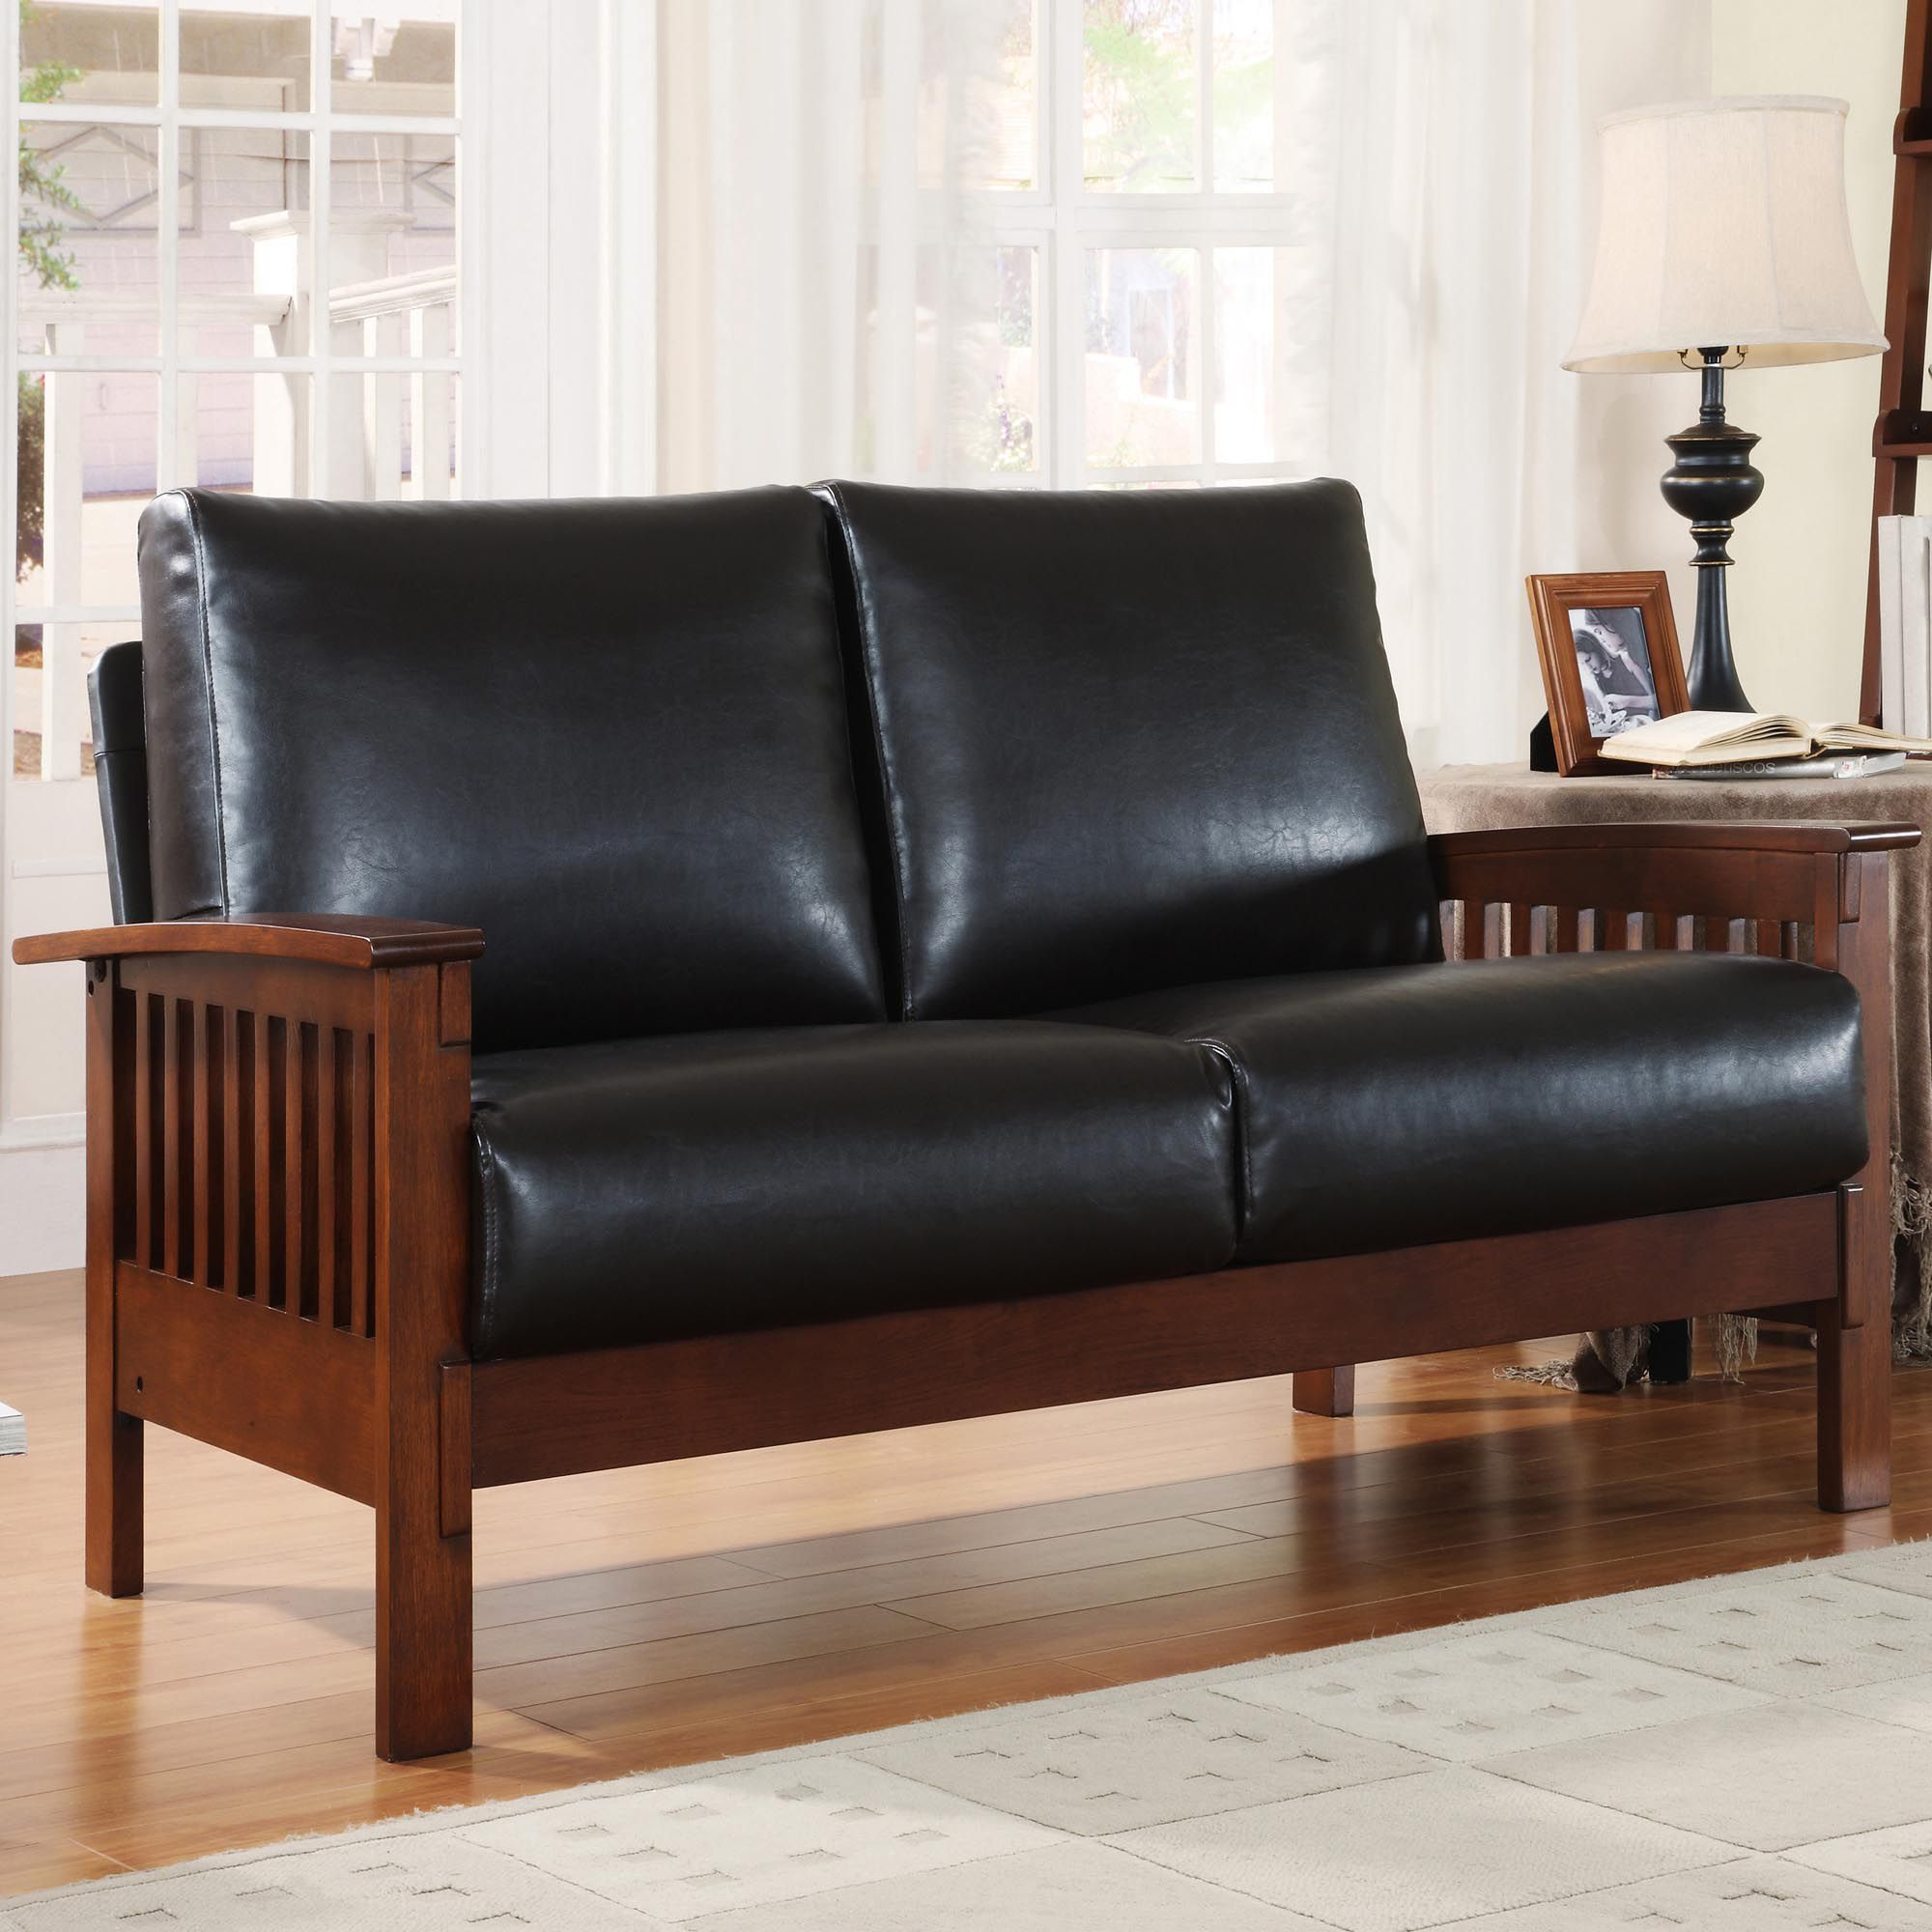 mission brown leather sofa ottomans oxford creek marlin inspired loveseat in